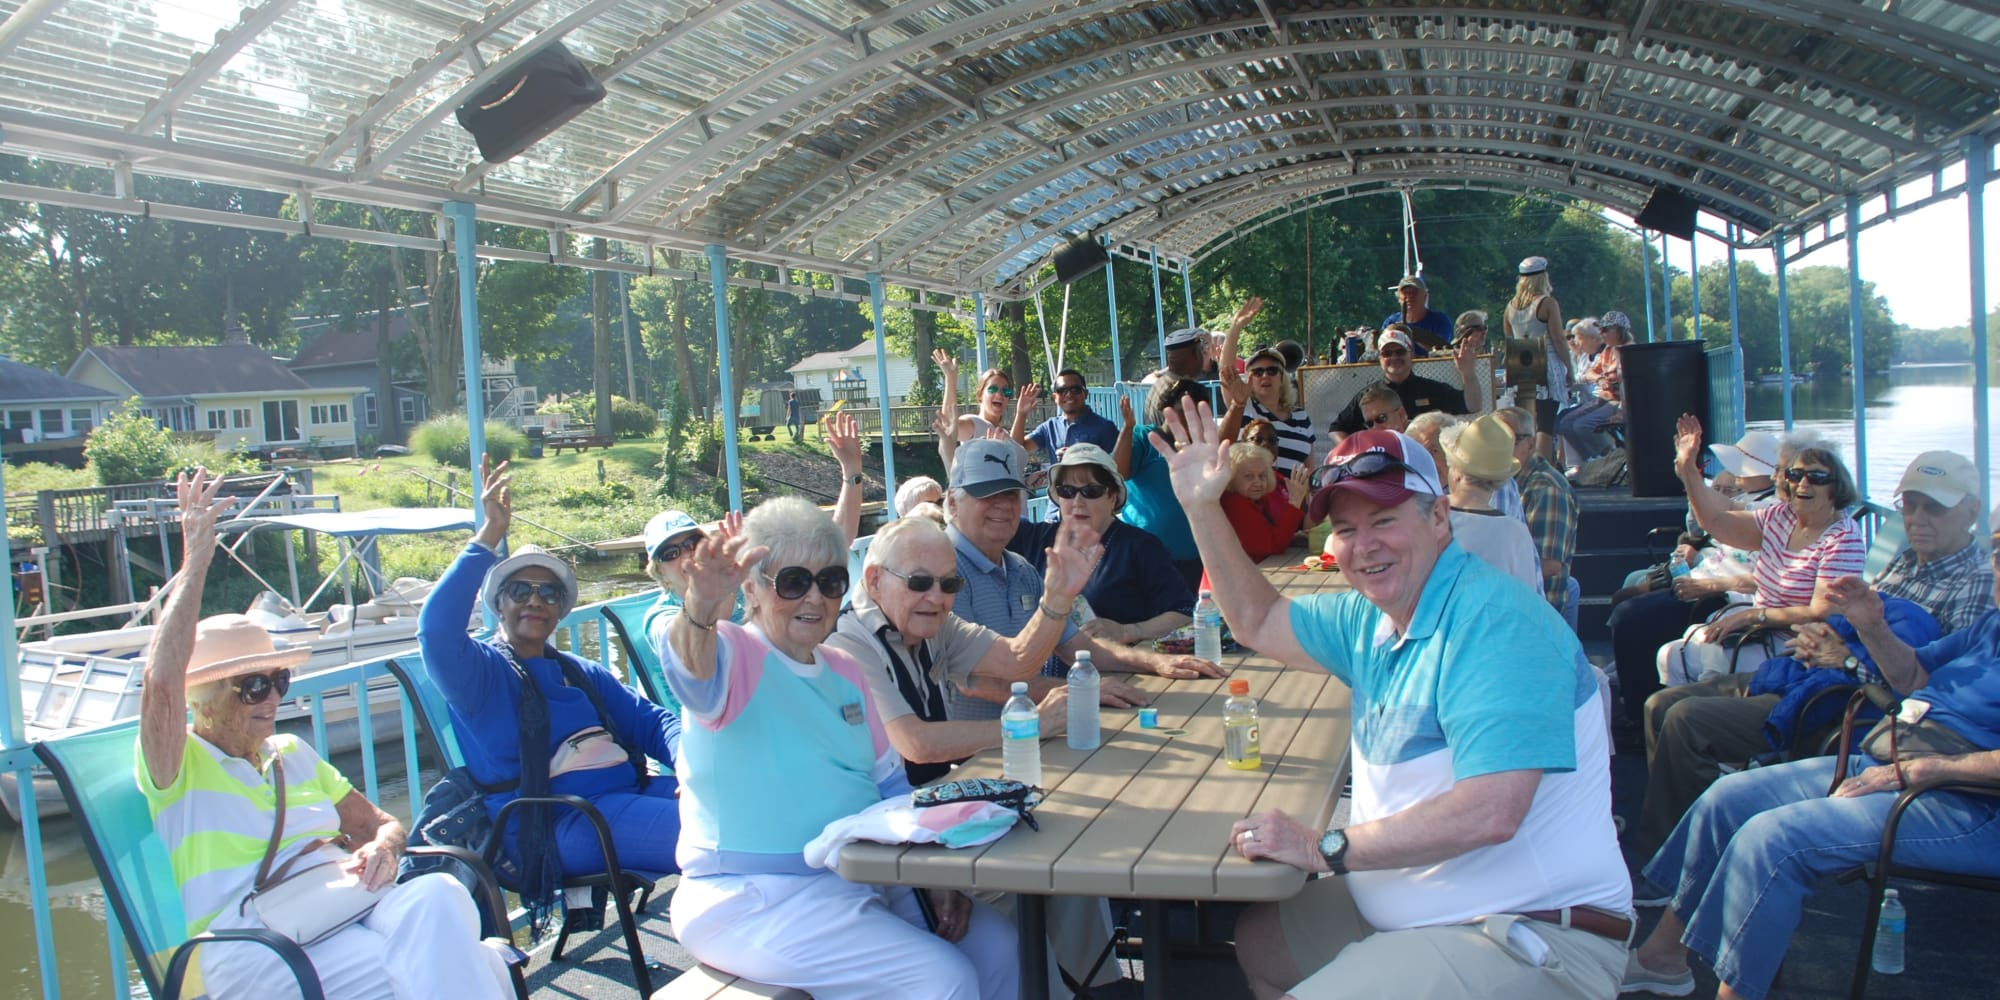 A large group of residents from Southern Pines Gracious Retirement Living in Southern Pines, North Carolina on a boat